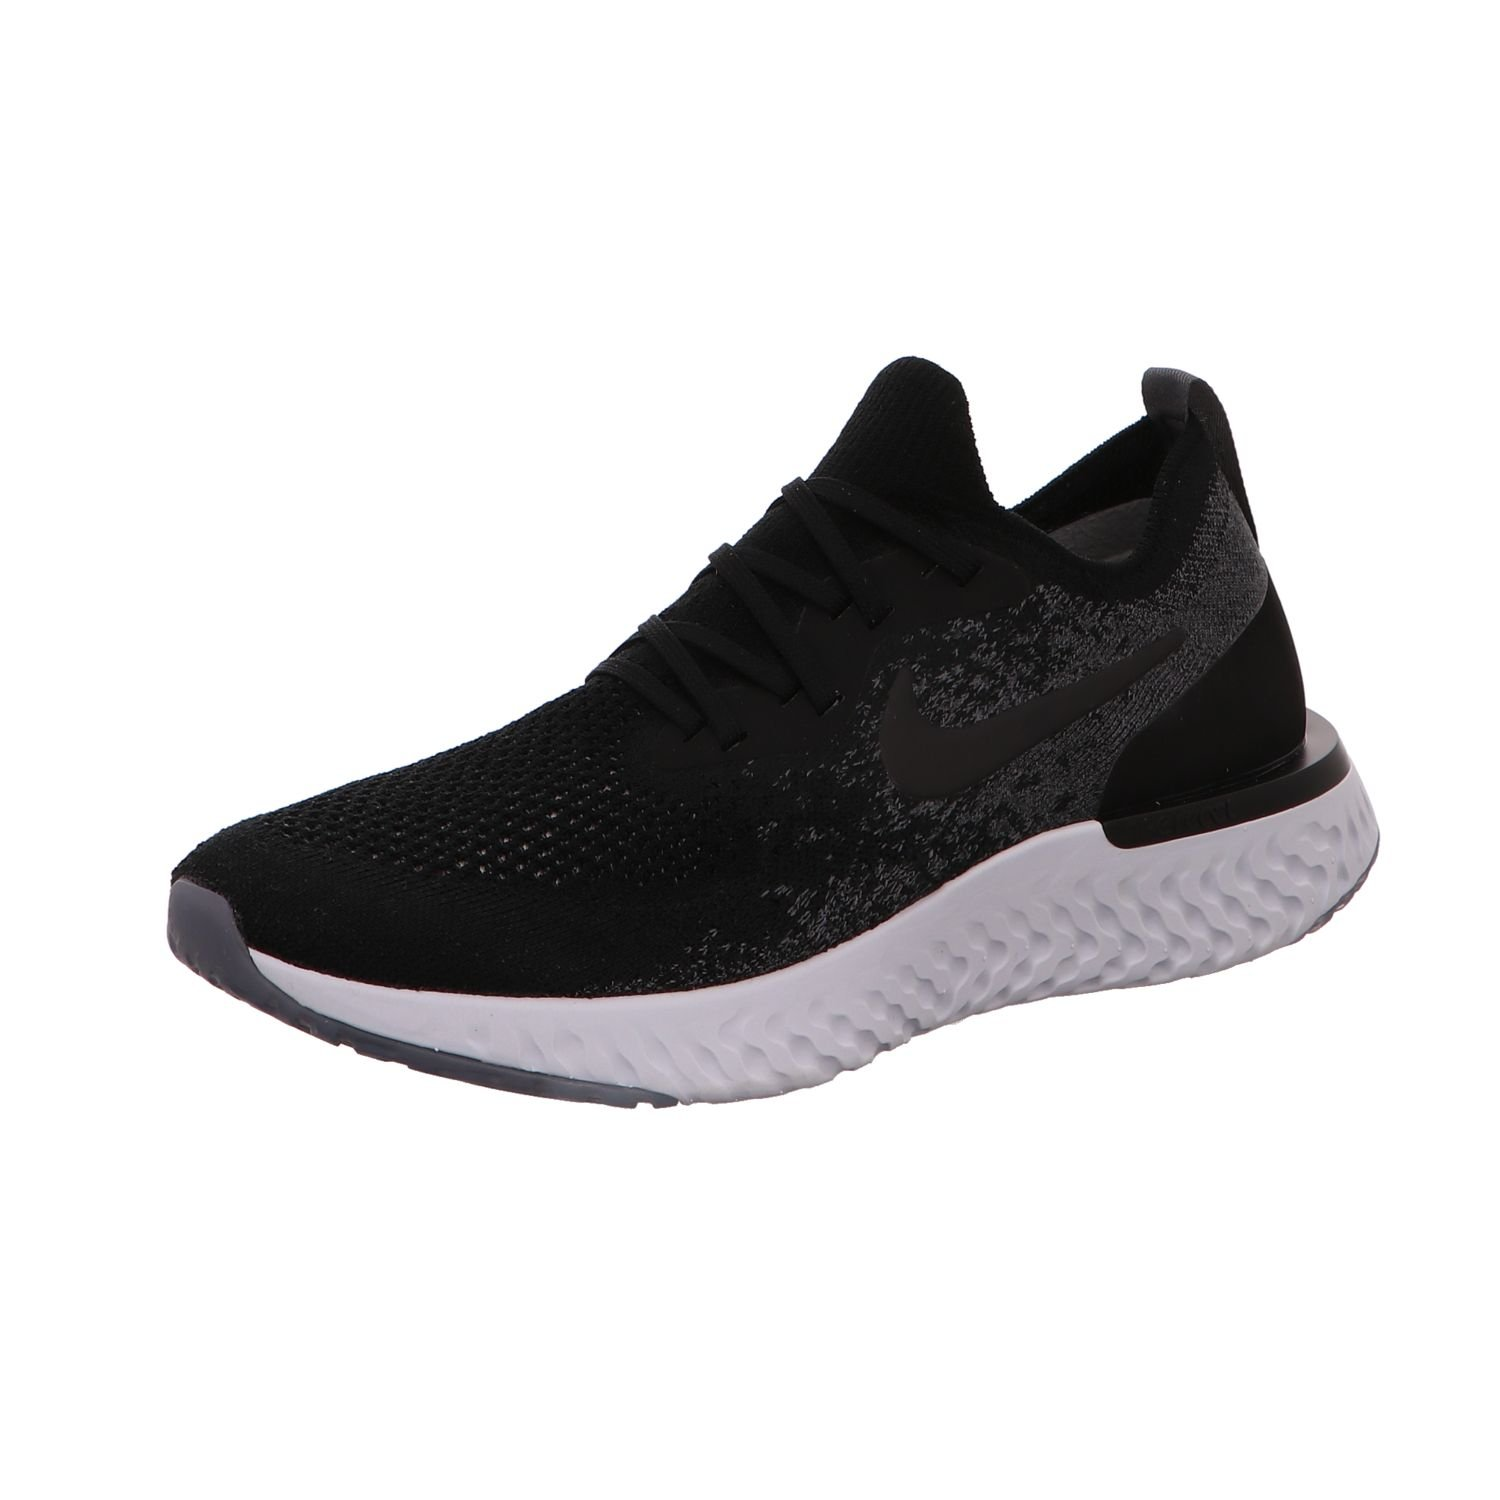 new concept 61313 71107 Galleon - NIKE Women s WMNS Epic React Flyknit, Black Dark Grey, 5 M US